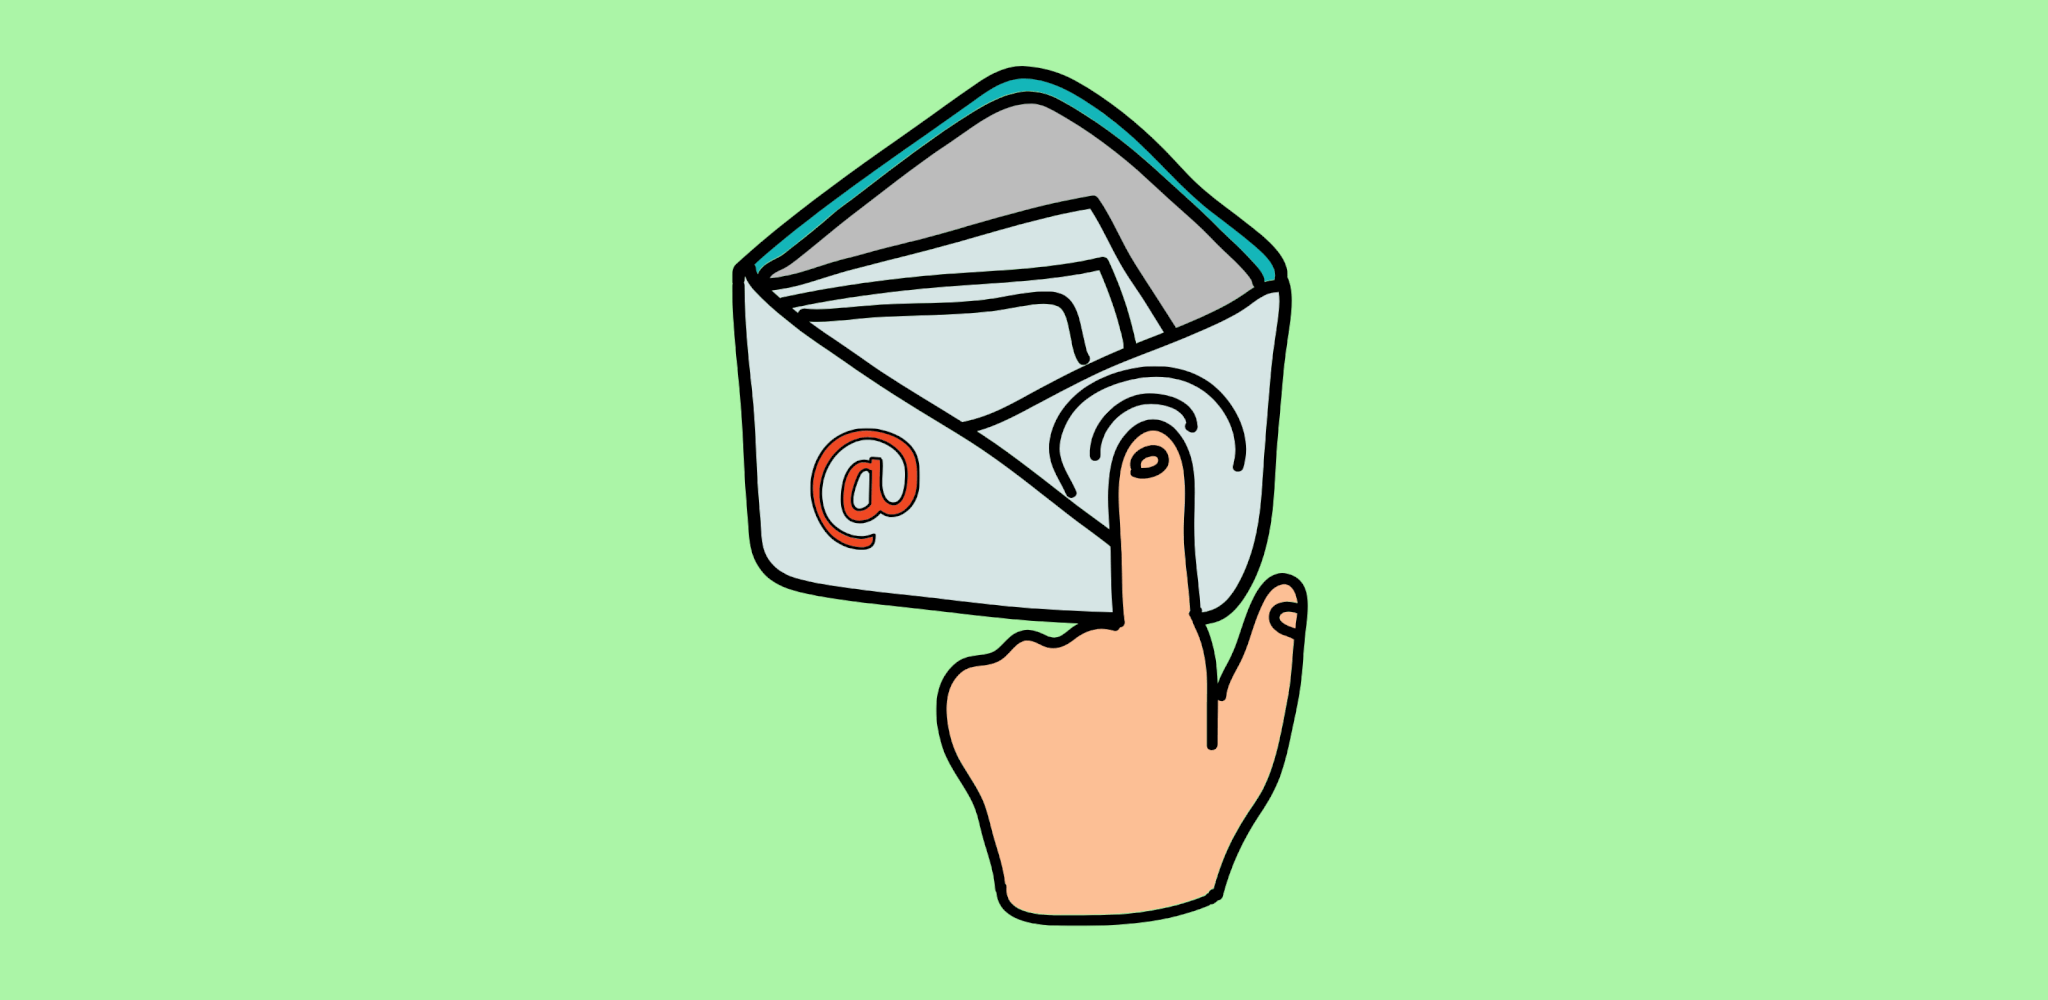 how to find an email address